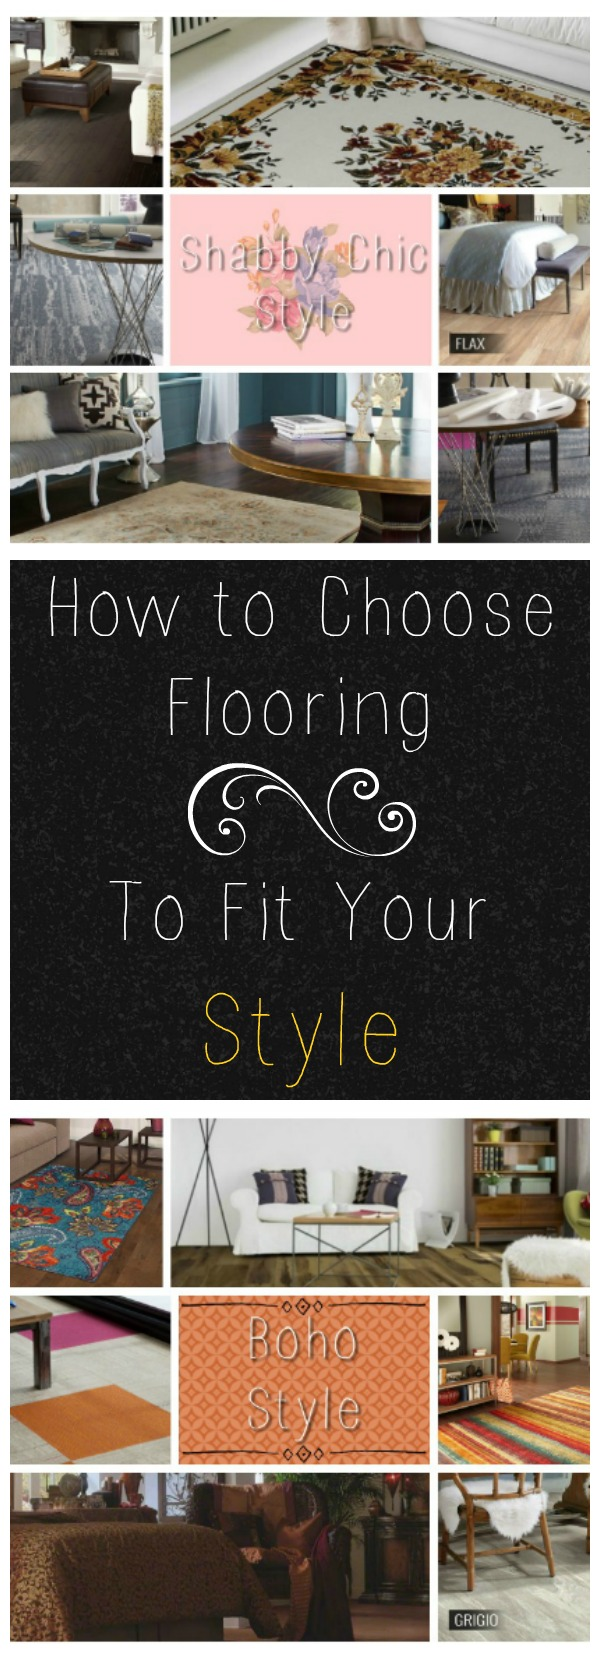 How to Choose Flooring to Fit Your Style